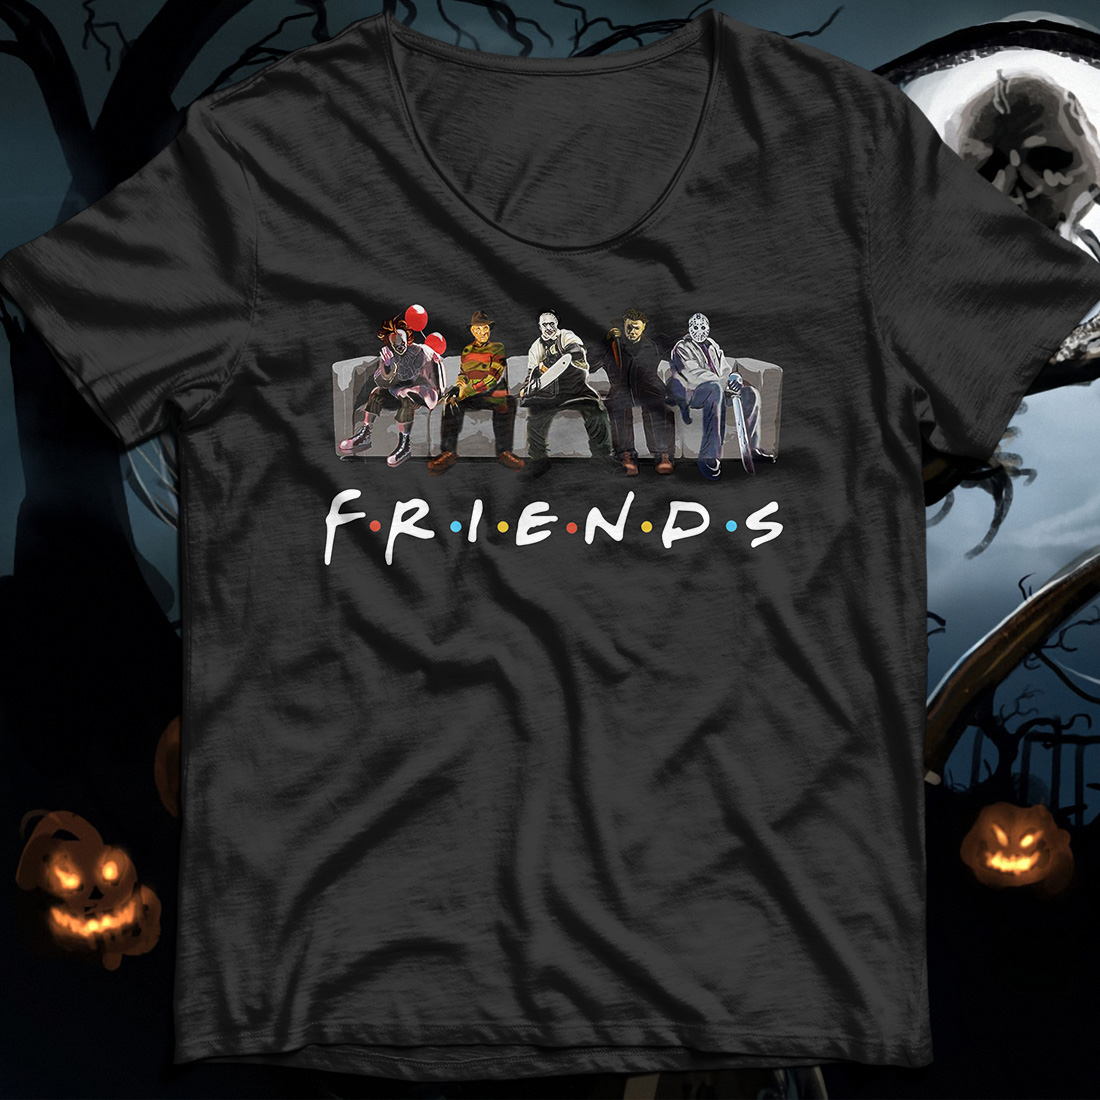 Pennywise IT Leatherface Krueger Jason Voorhees Myers friends shirt